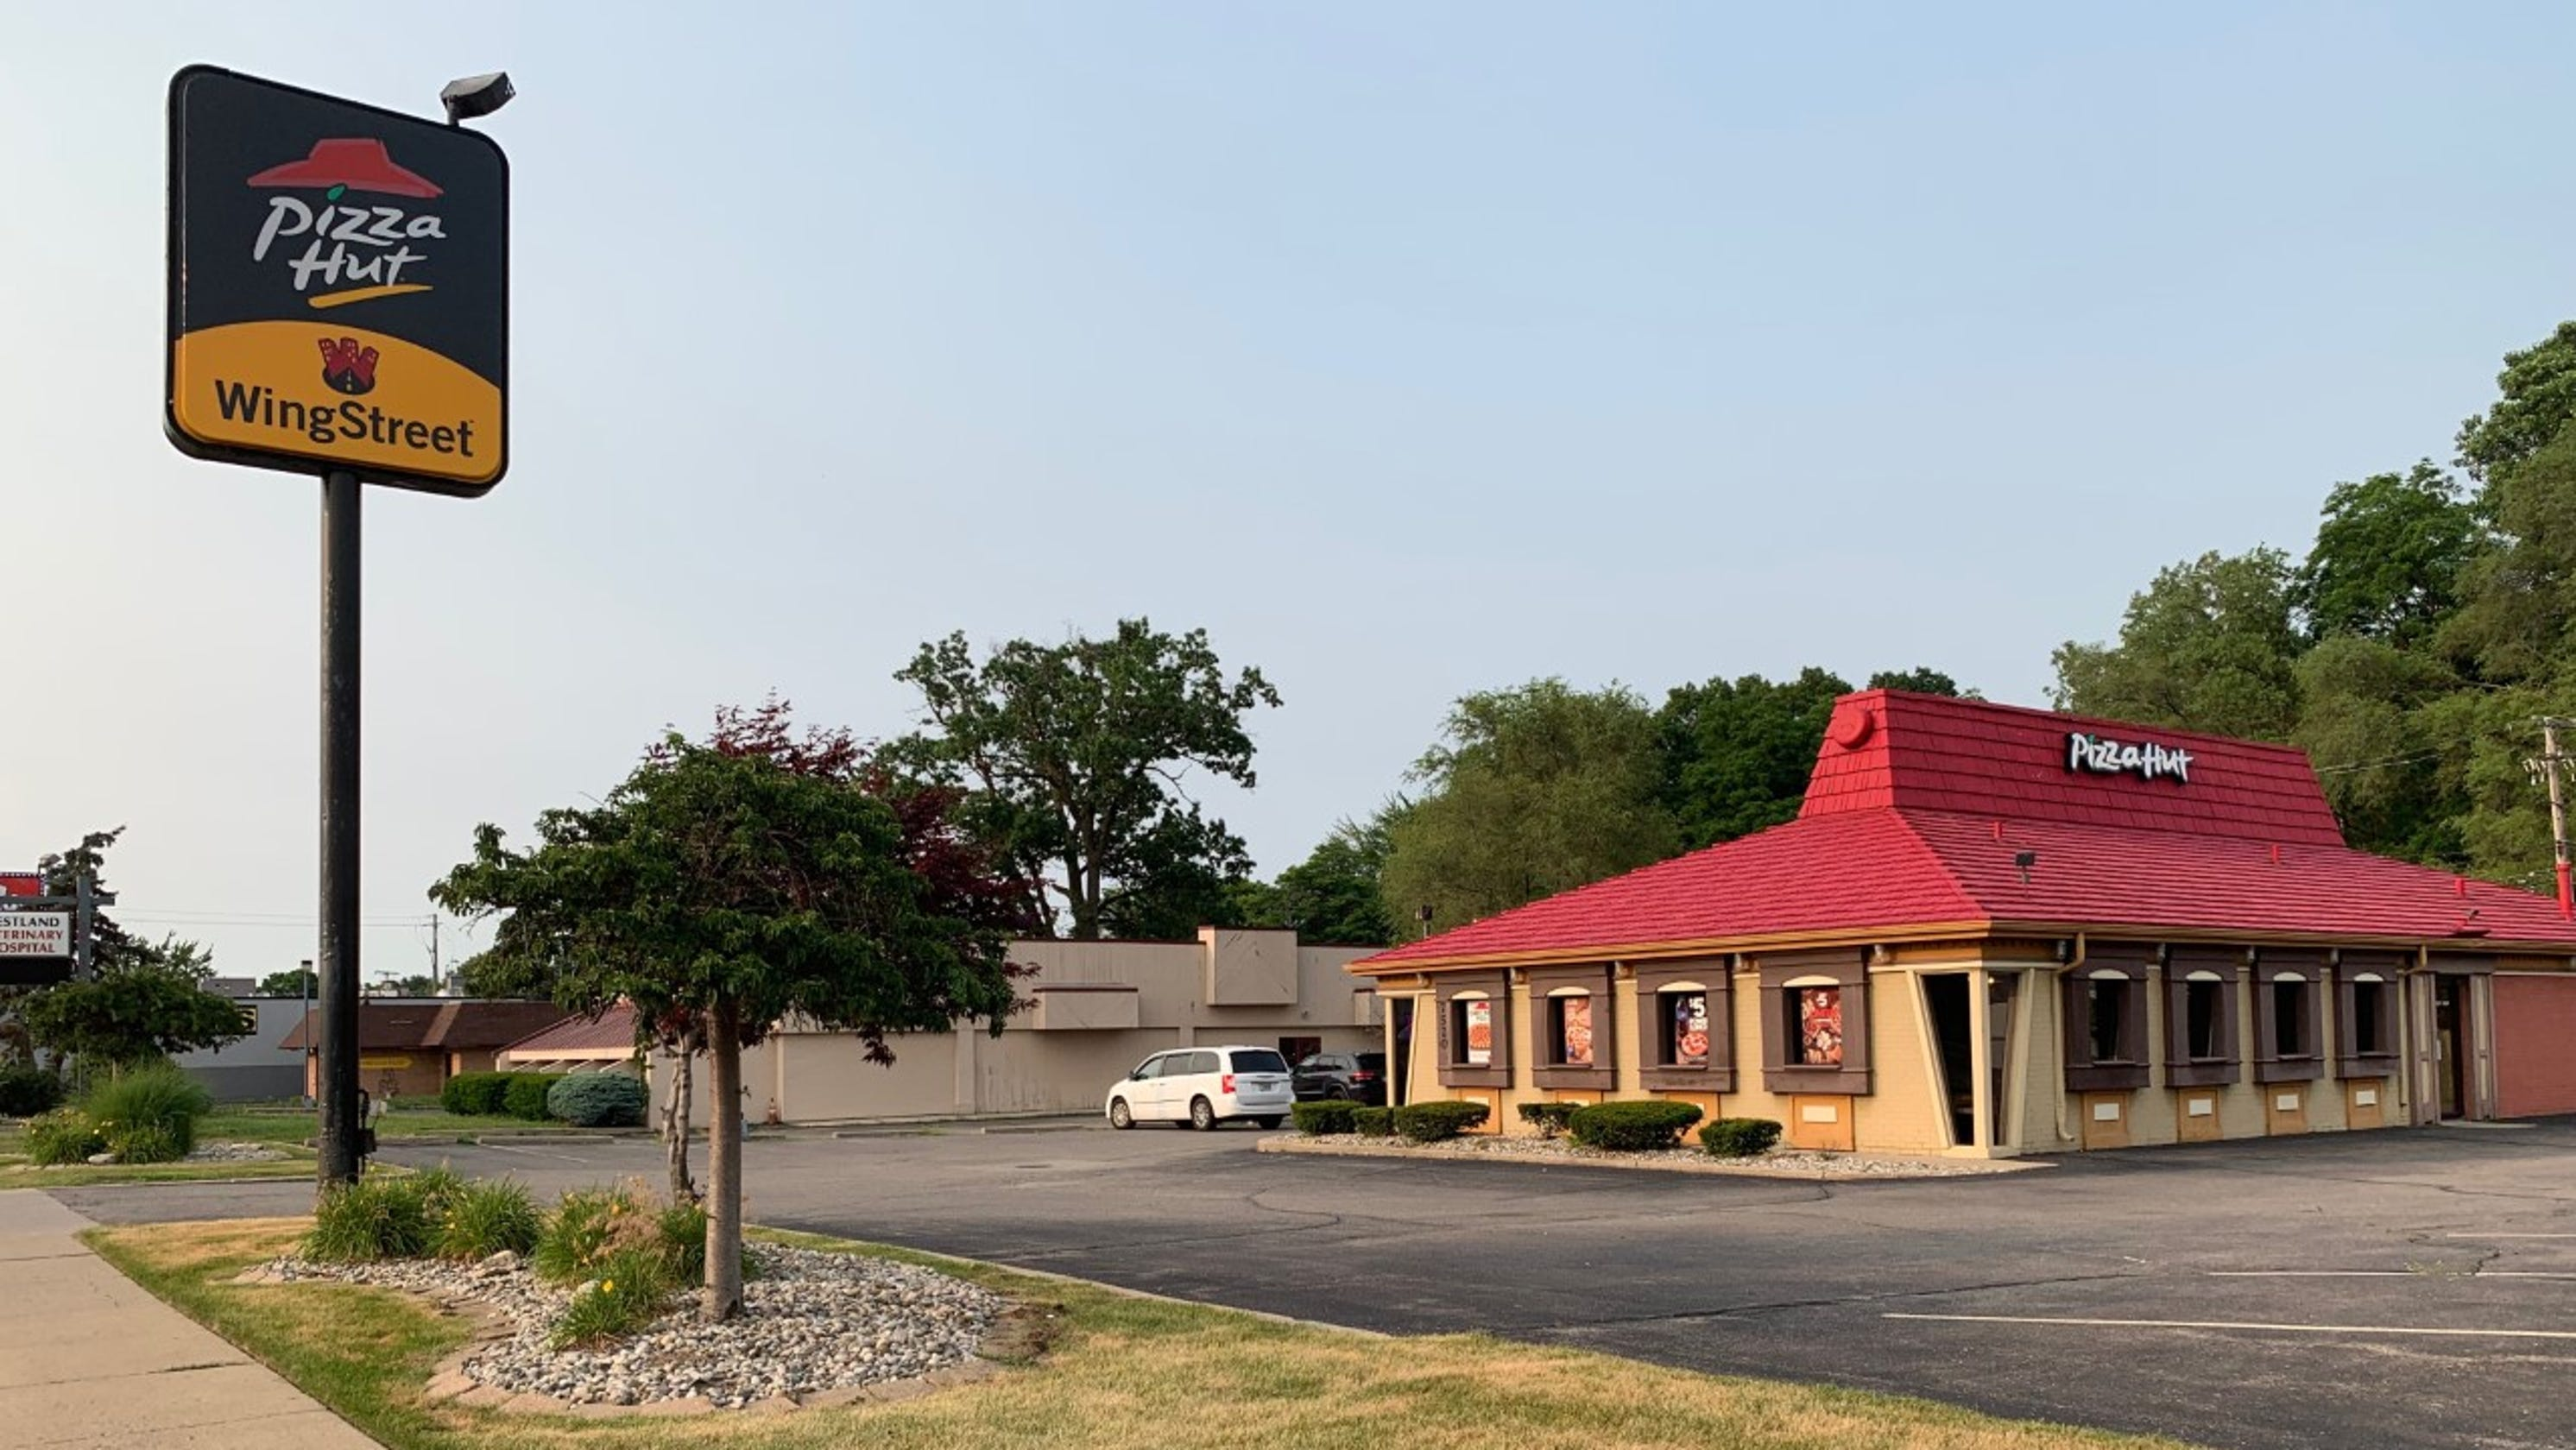 Metro Detroit Pizza Hut Locations What The Buildings Look